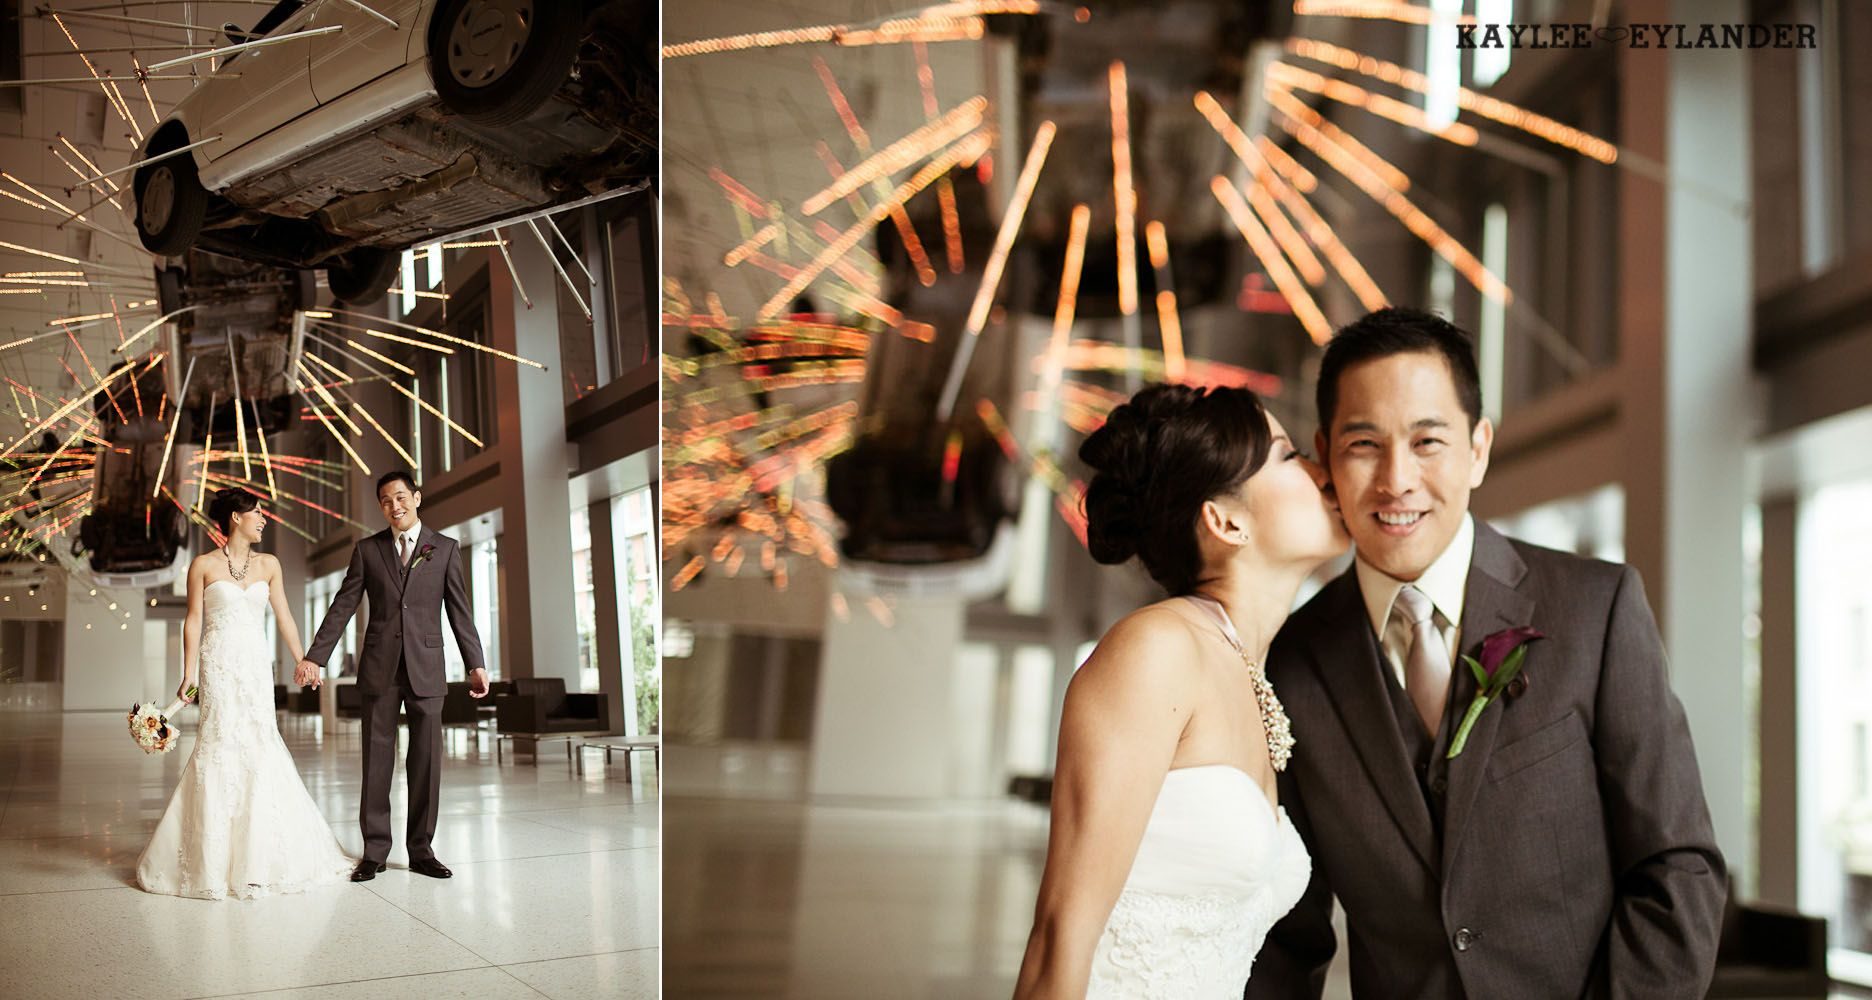 Seattle Art Museum Wedding Kaylee Eylander Photography Downtown